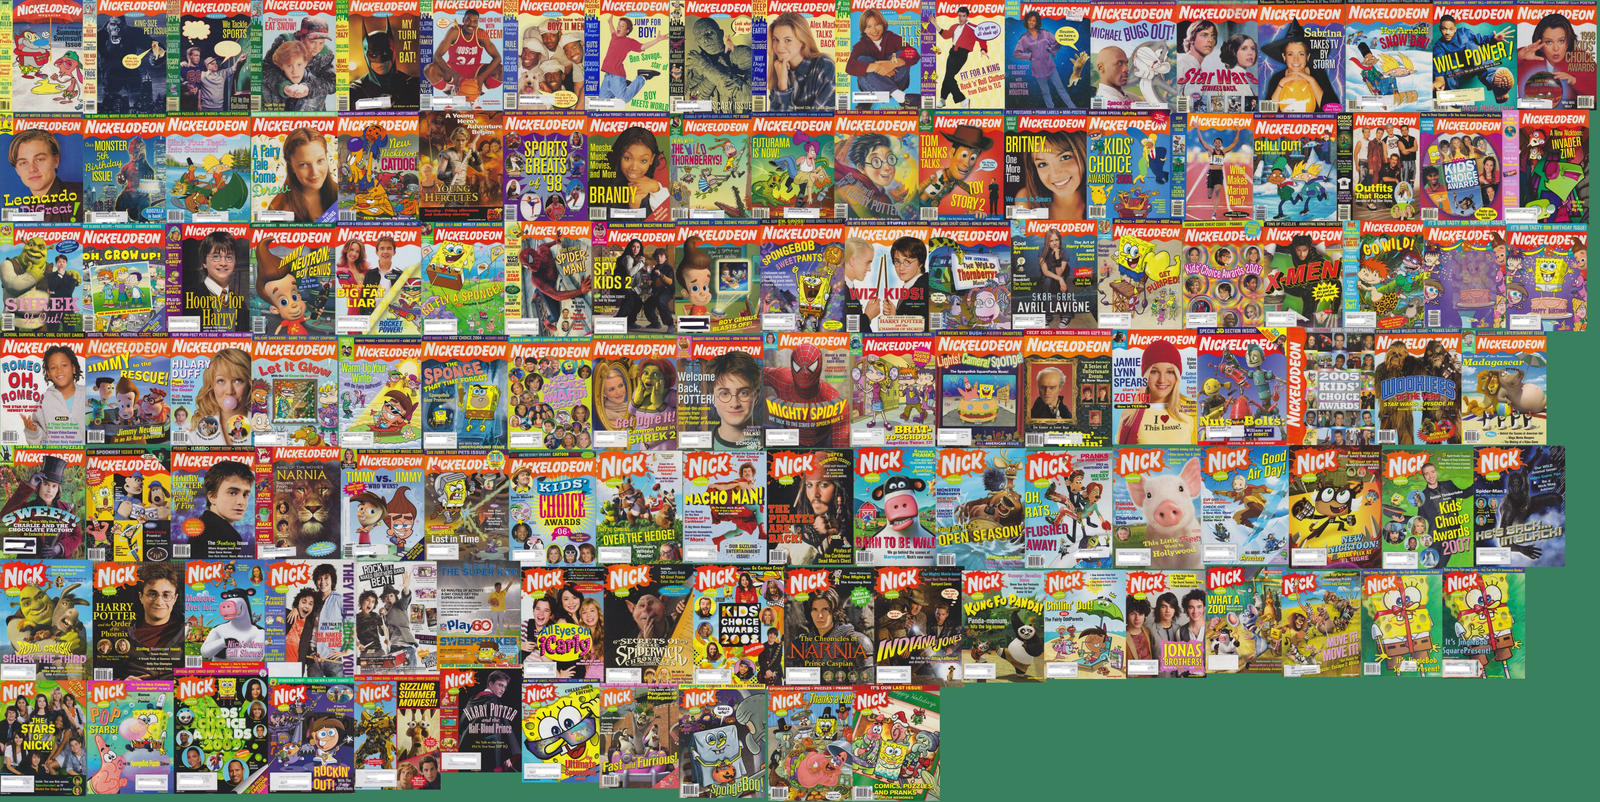 My Nickelodeon Magazine Library 12 8 12 342087422 on old cartoon network in 2007